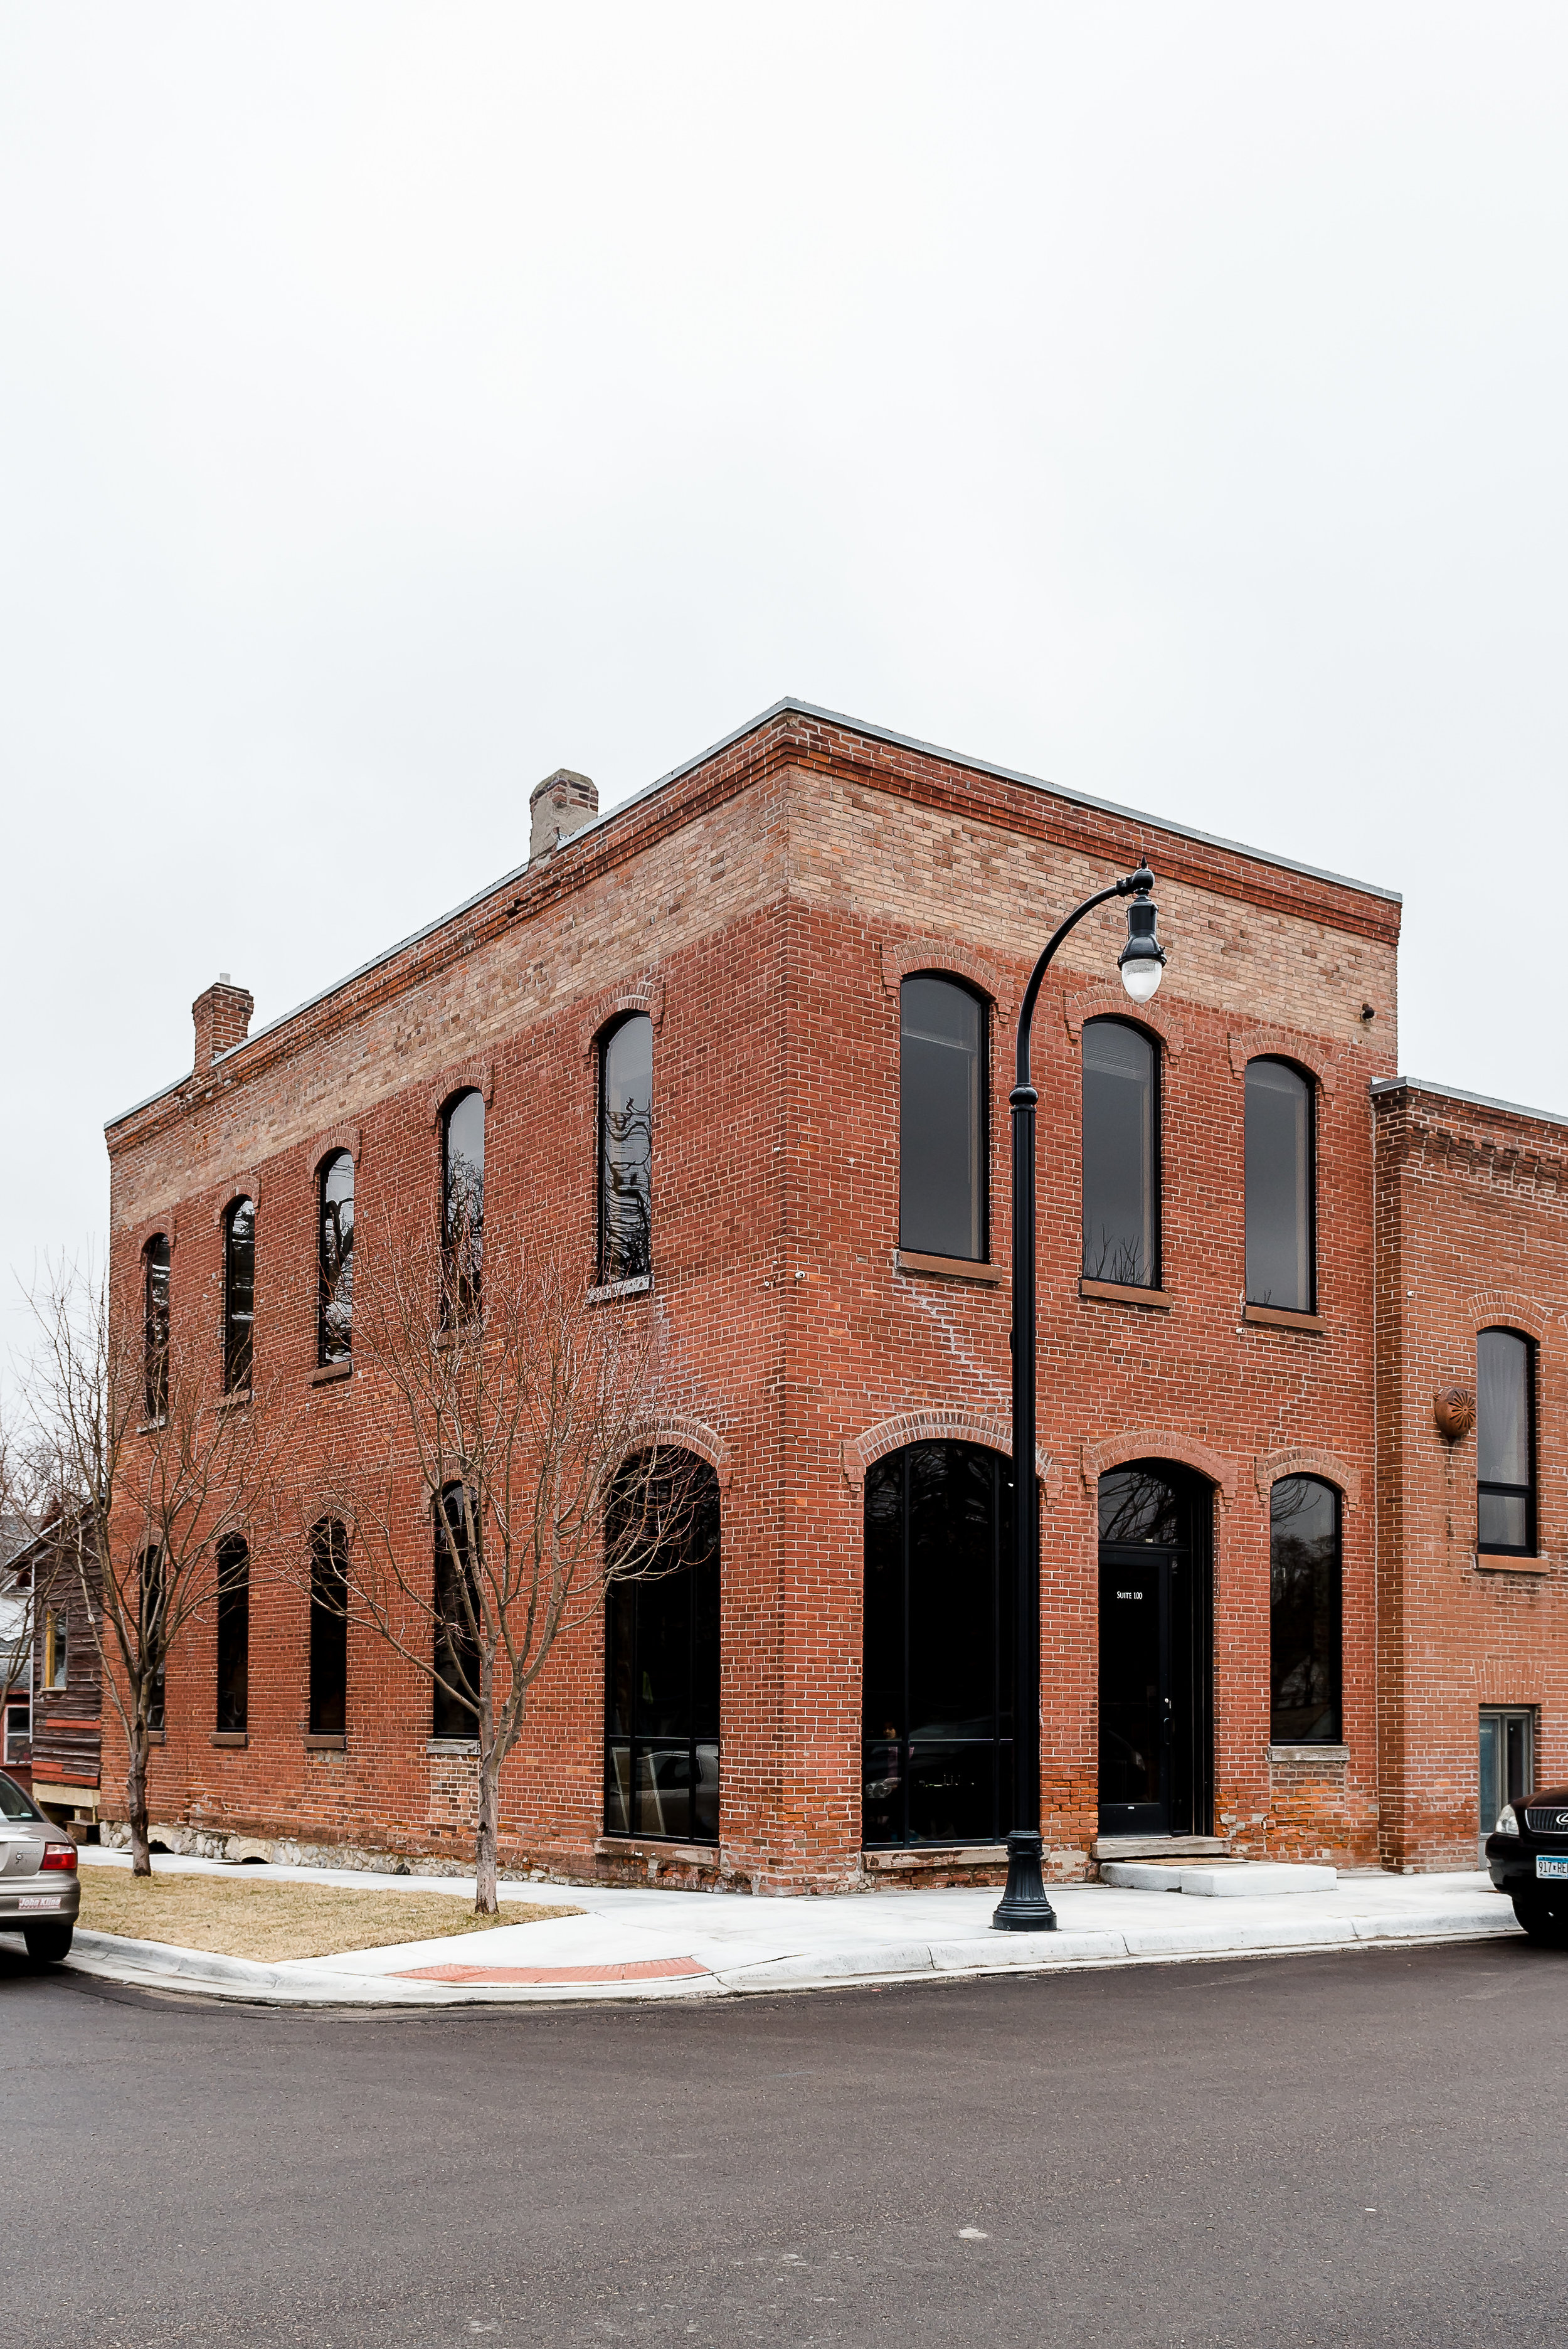 The new home of Laura Robinson Photography -- located on the upper floor of this beautiful, historic building in downtown Delano.